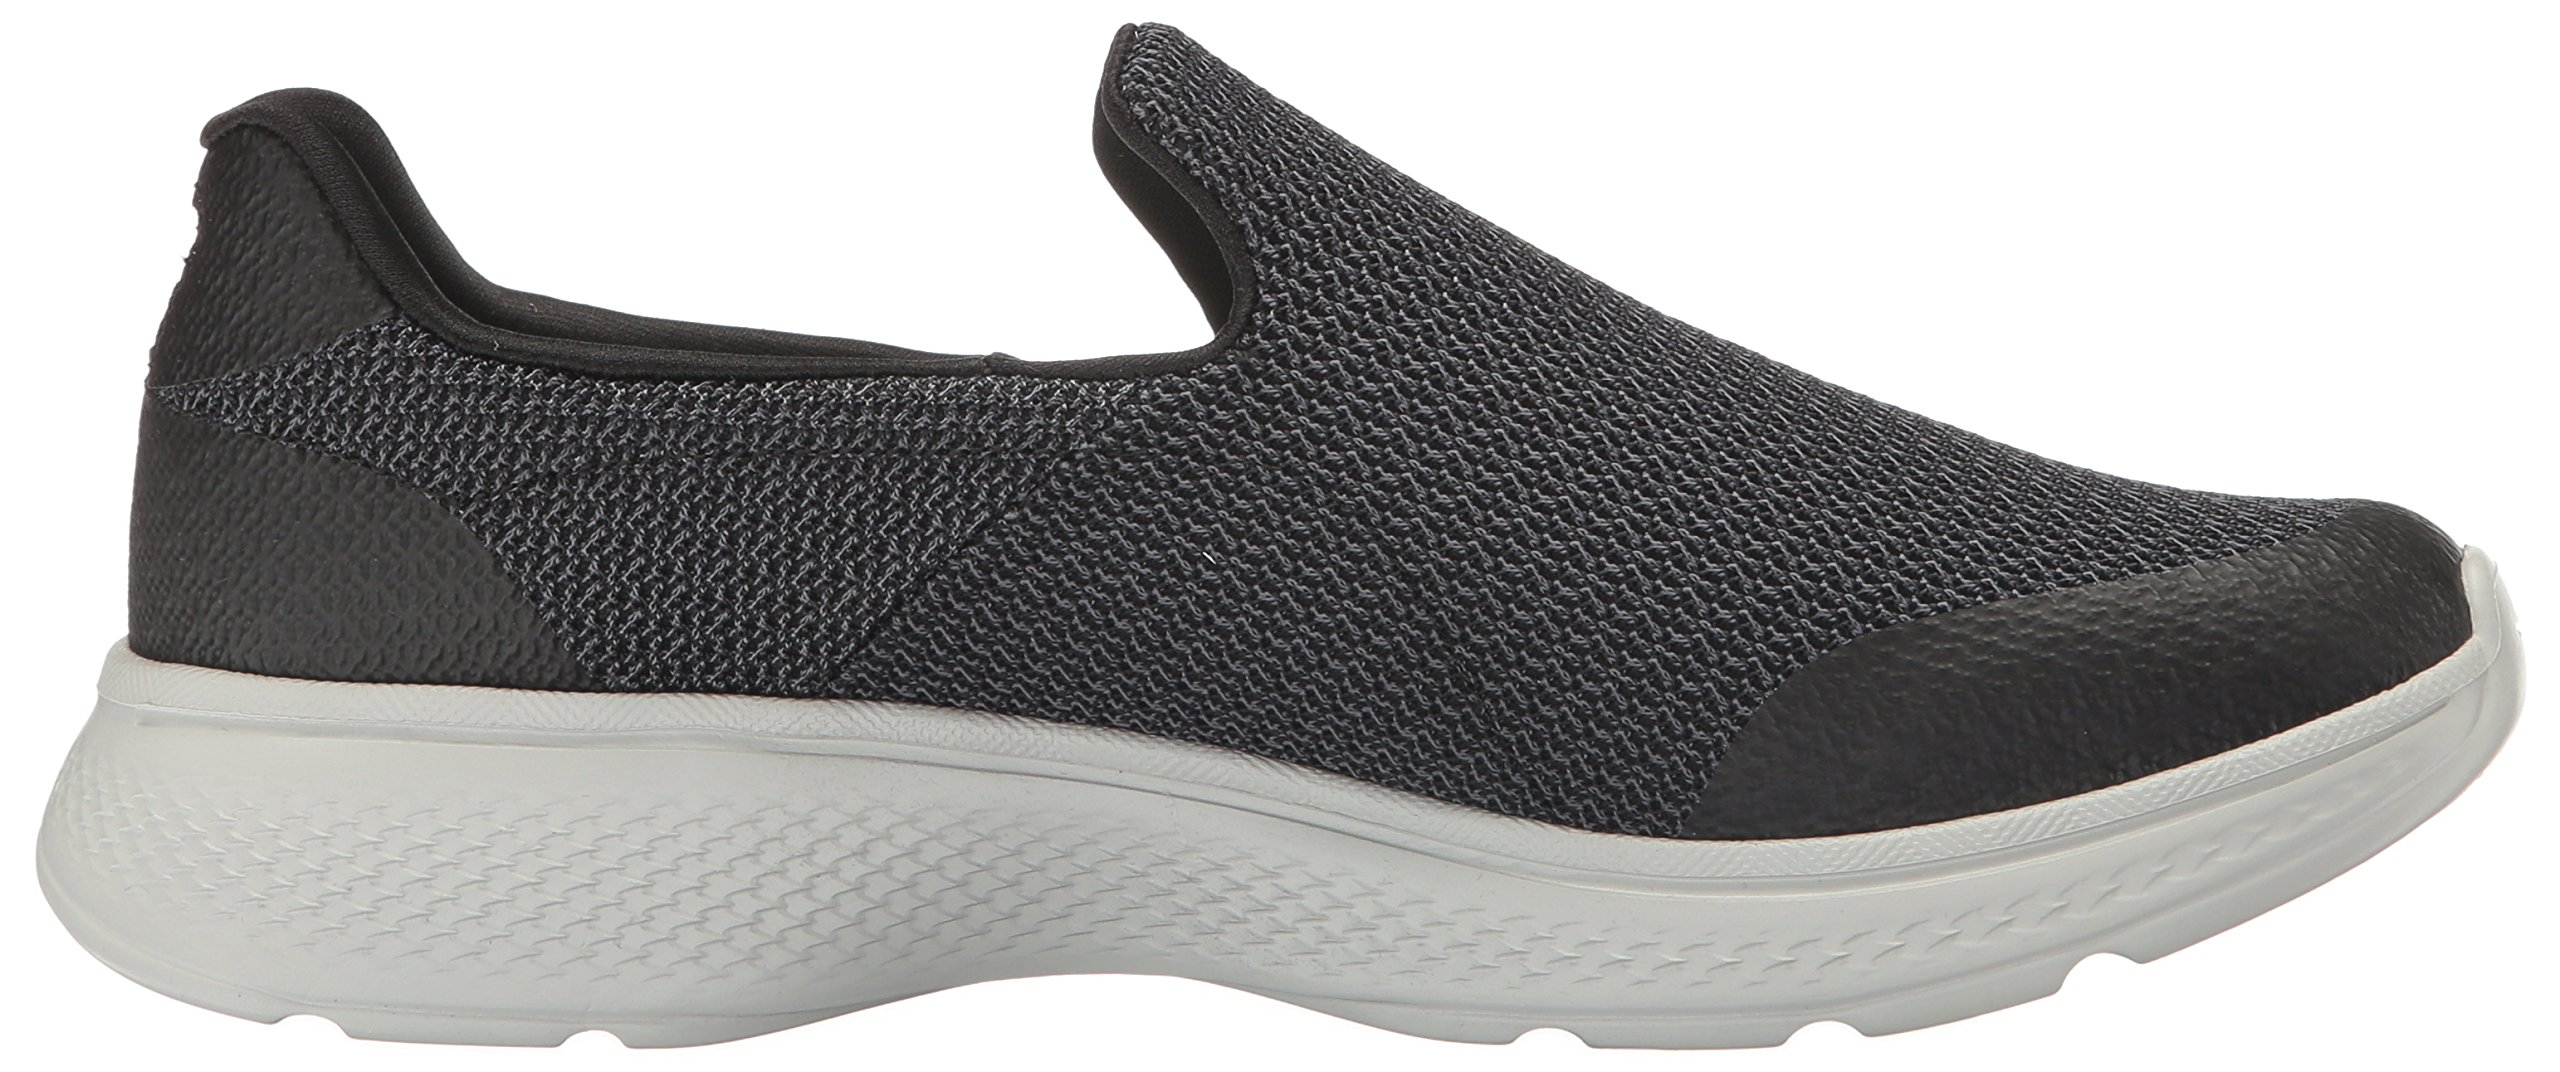 ca76ee593852 Skechers Performance Men s Go Walk 4 Expert Walking Shoe - 54155   Walking    Clothing